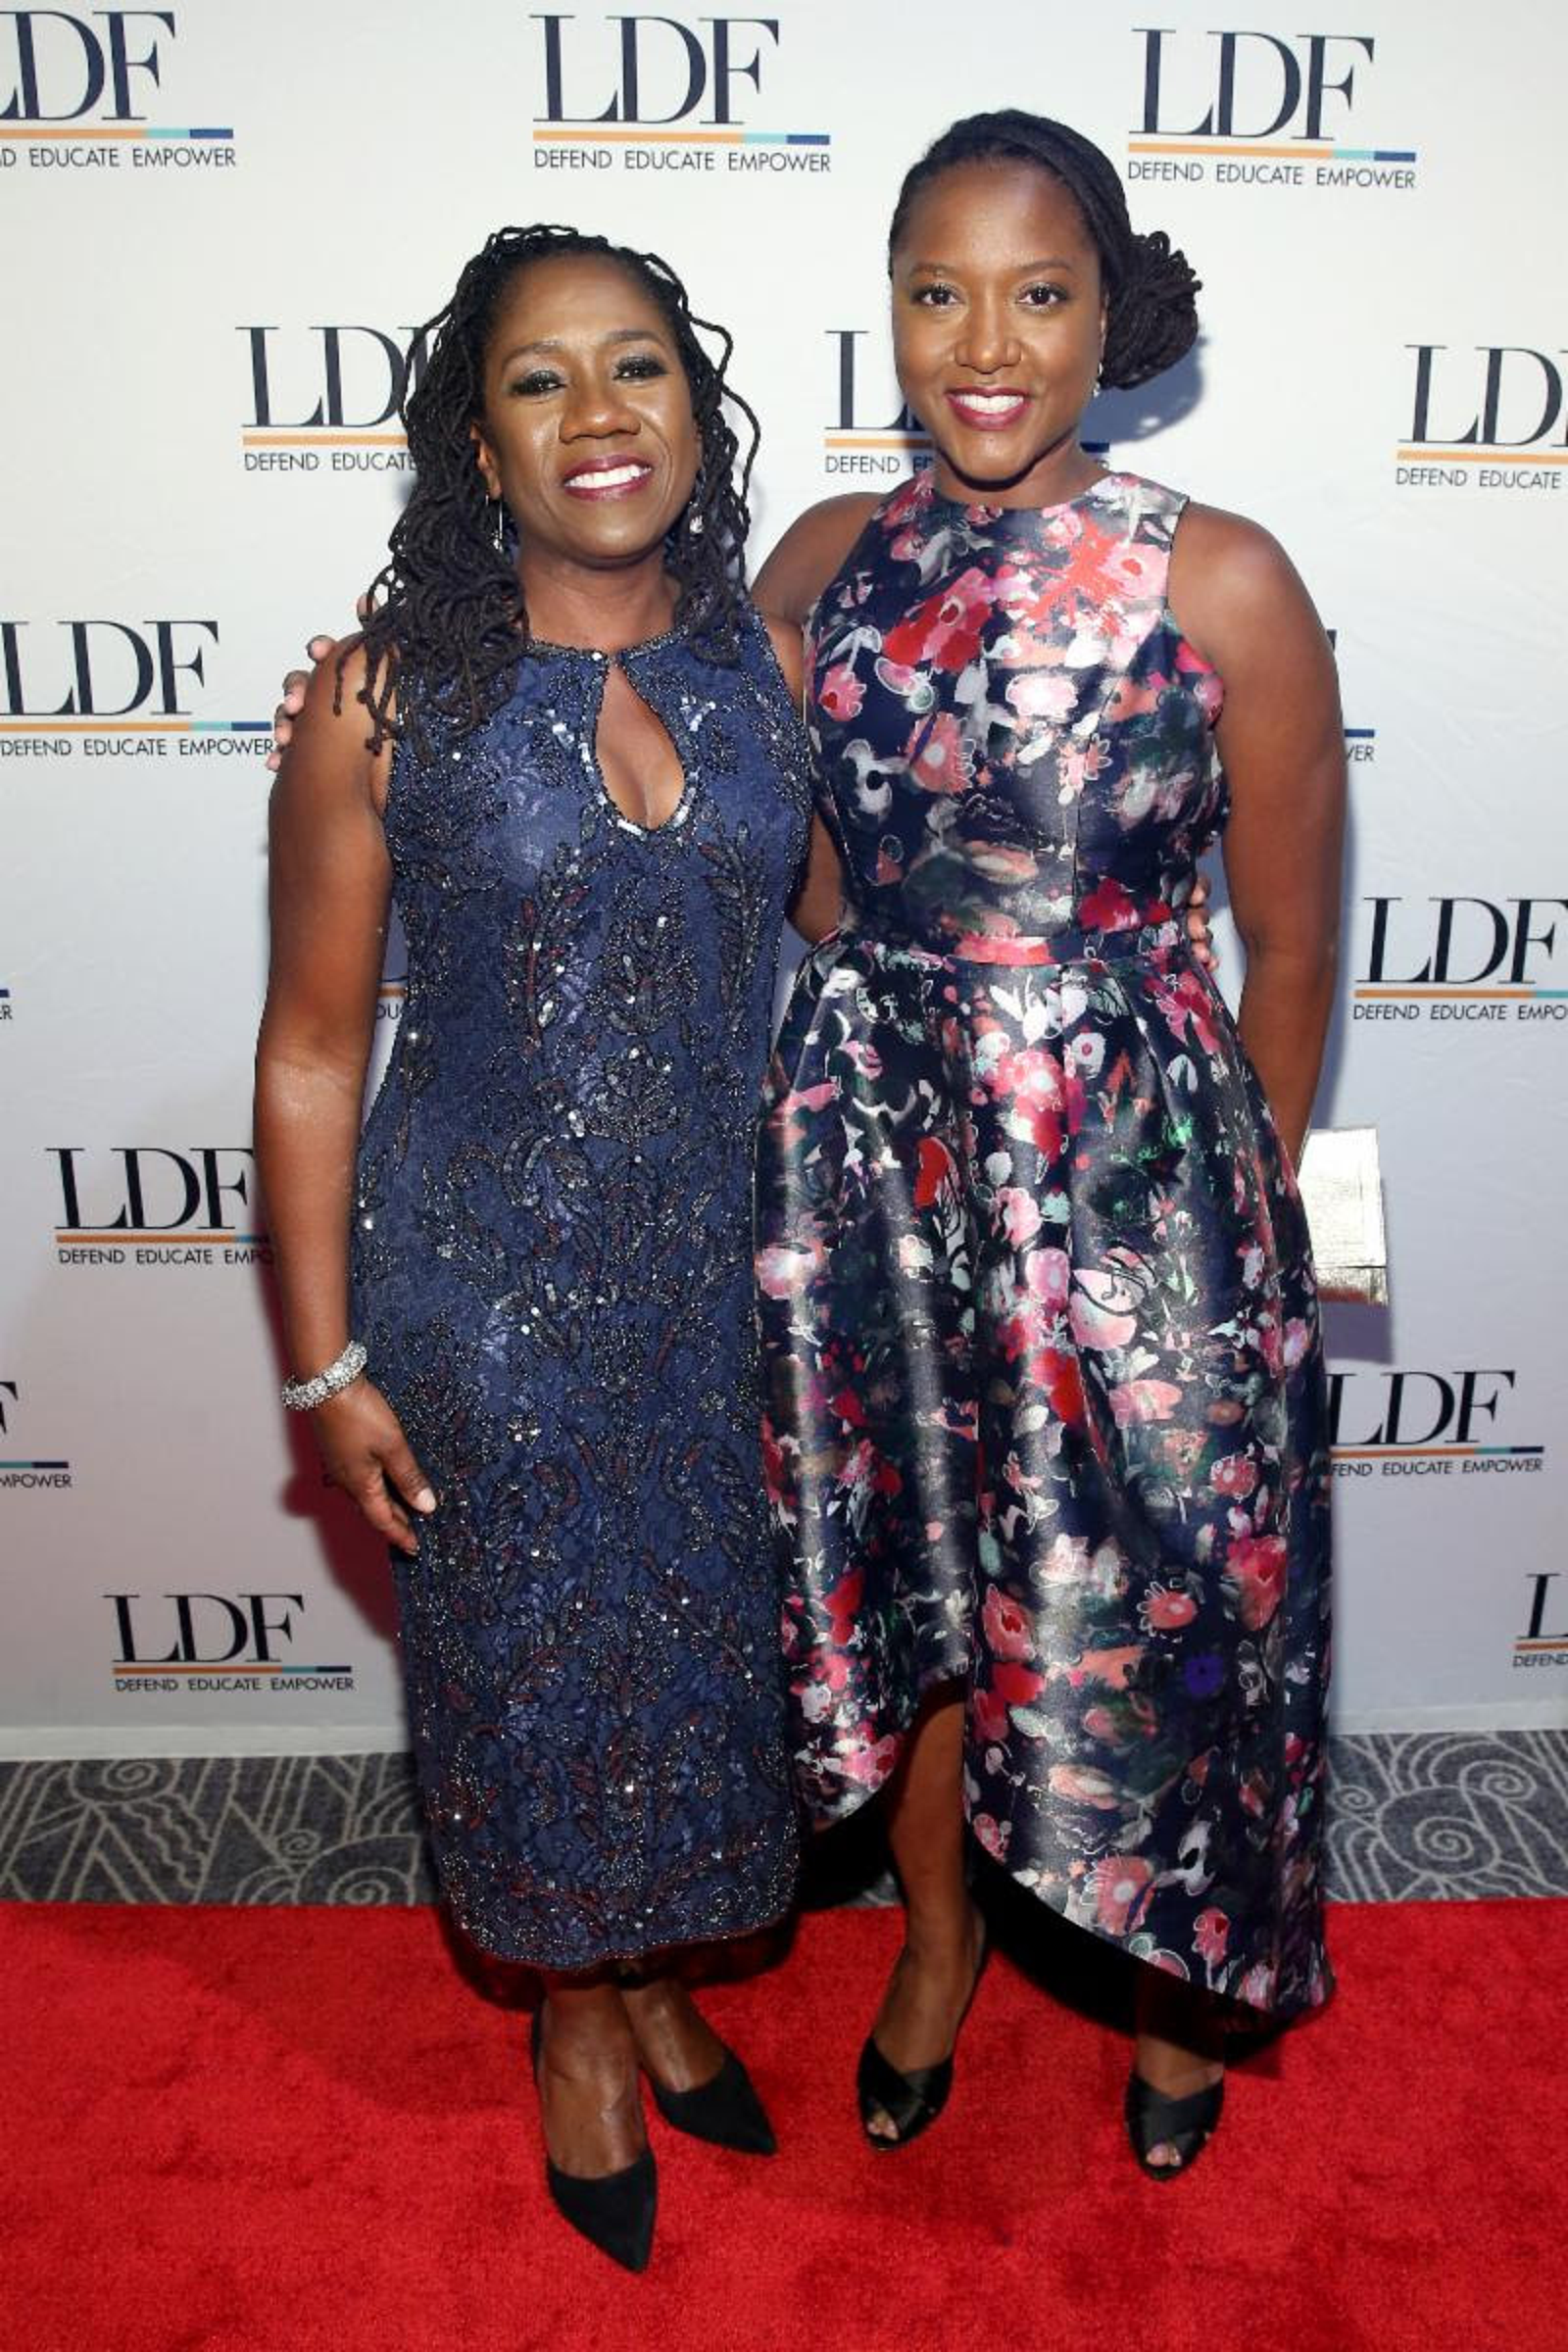 Sherrilyn Ifill with LDF associate director-counsel Janai Nelson